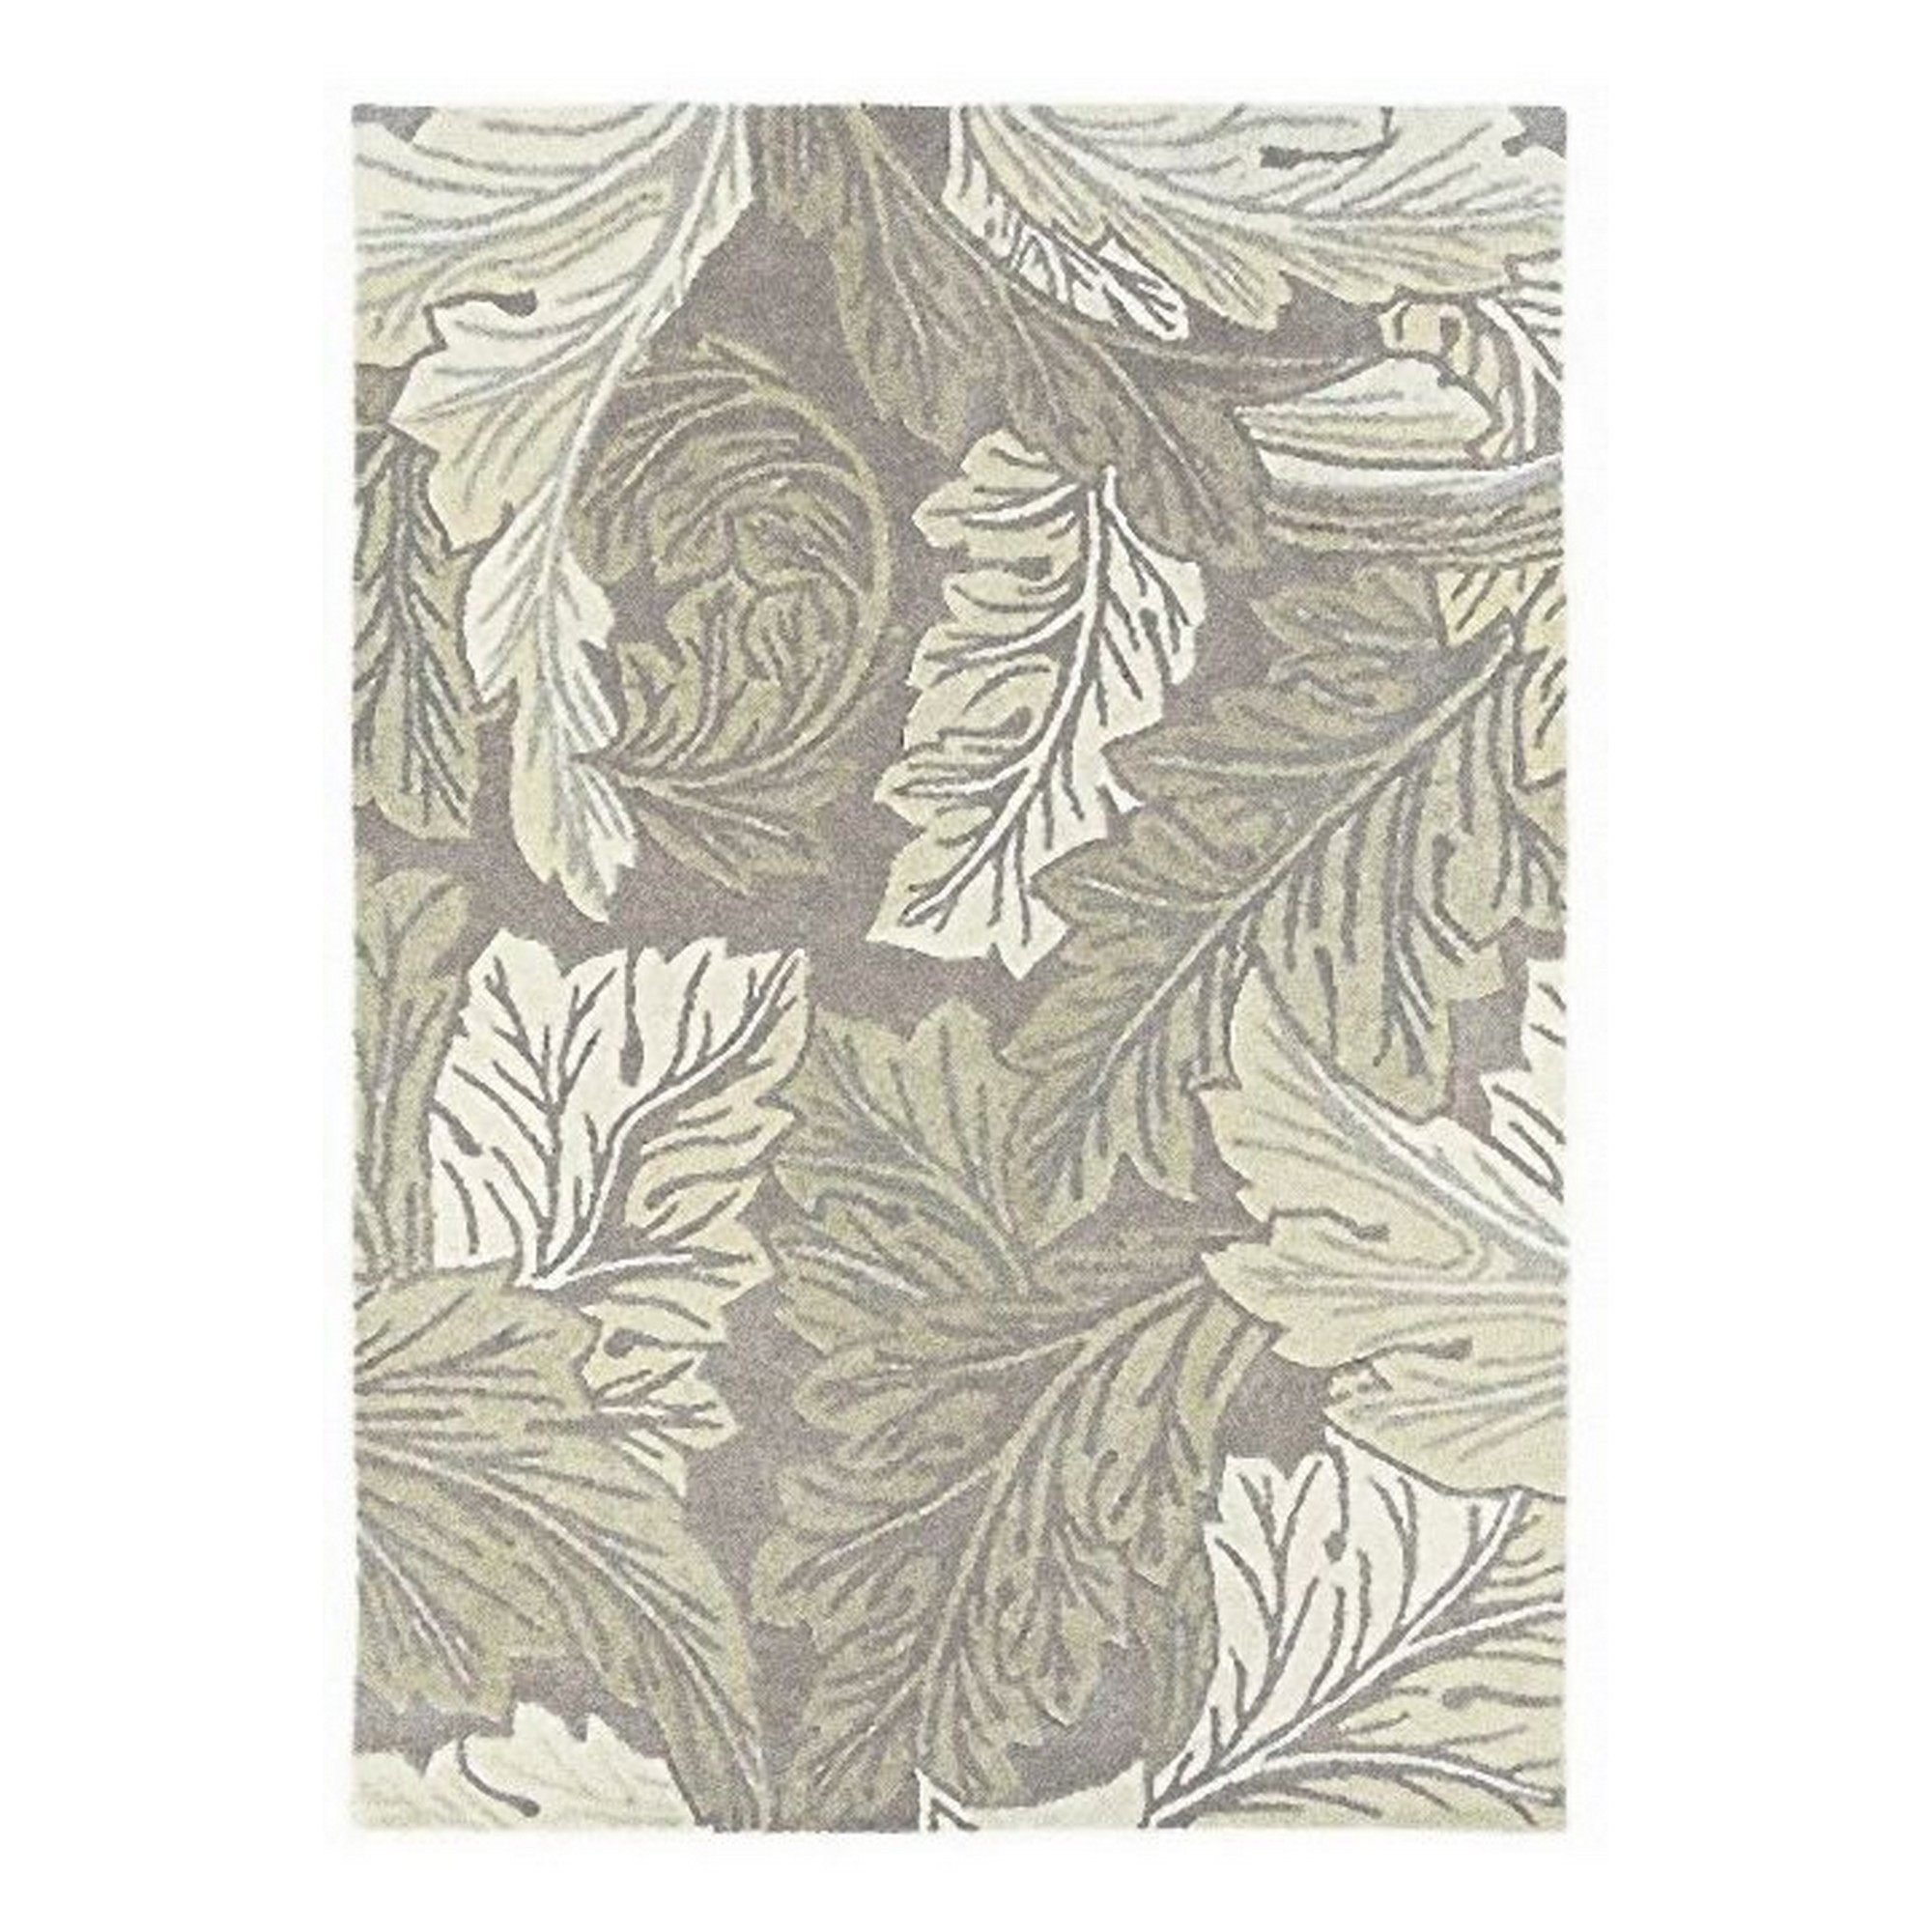 Acanthus Rugs 27201 Stone by William Morris